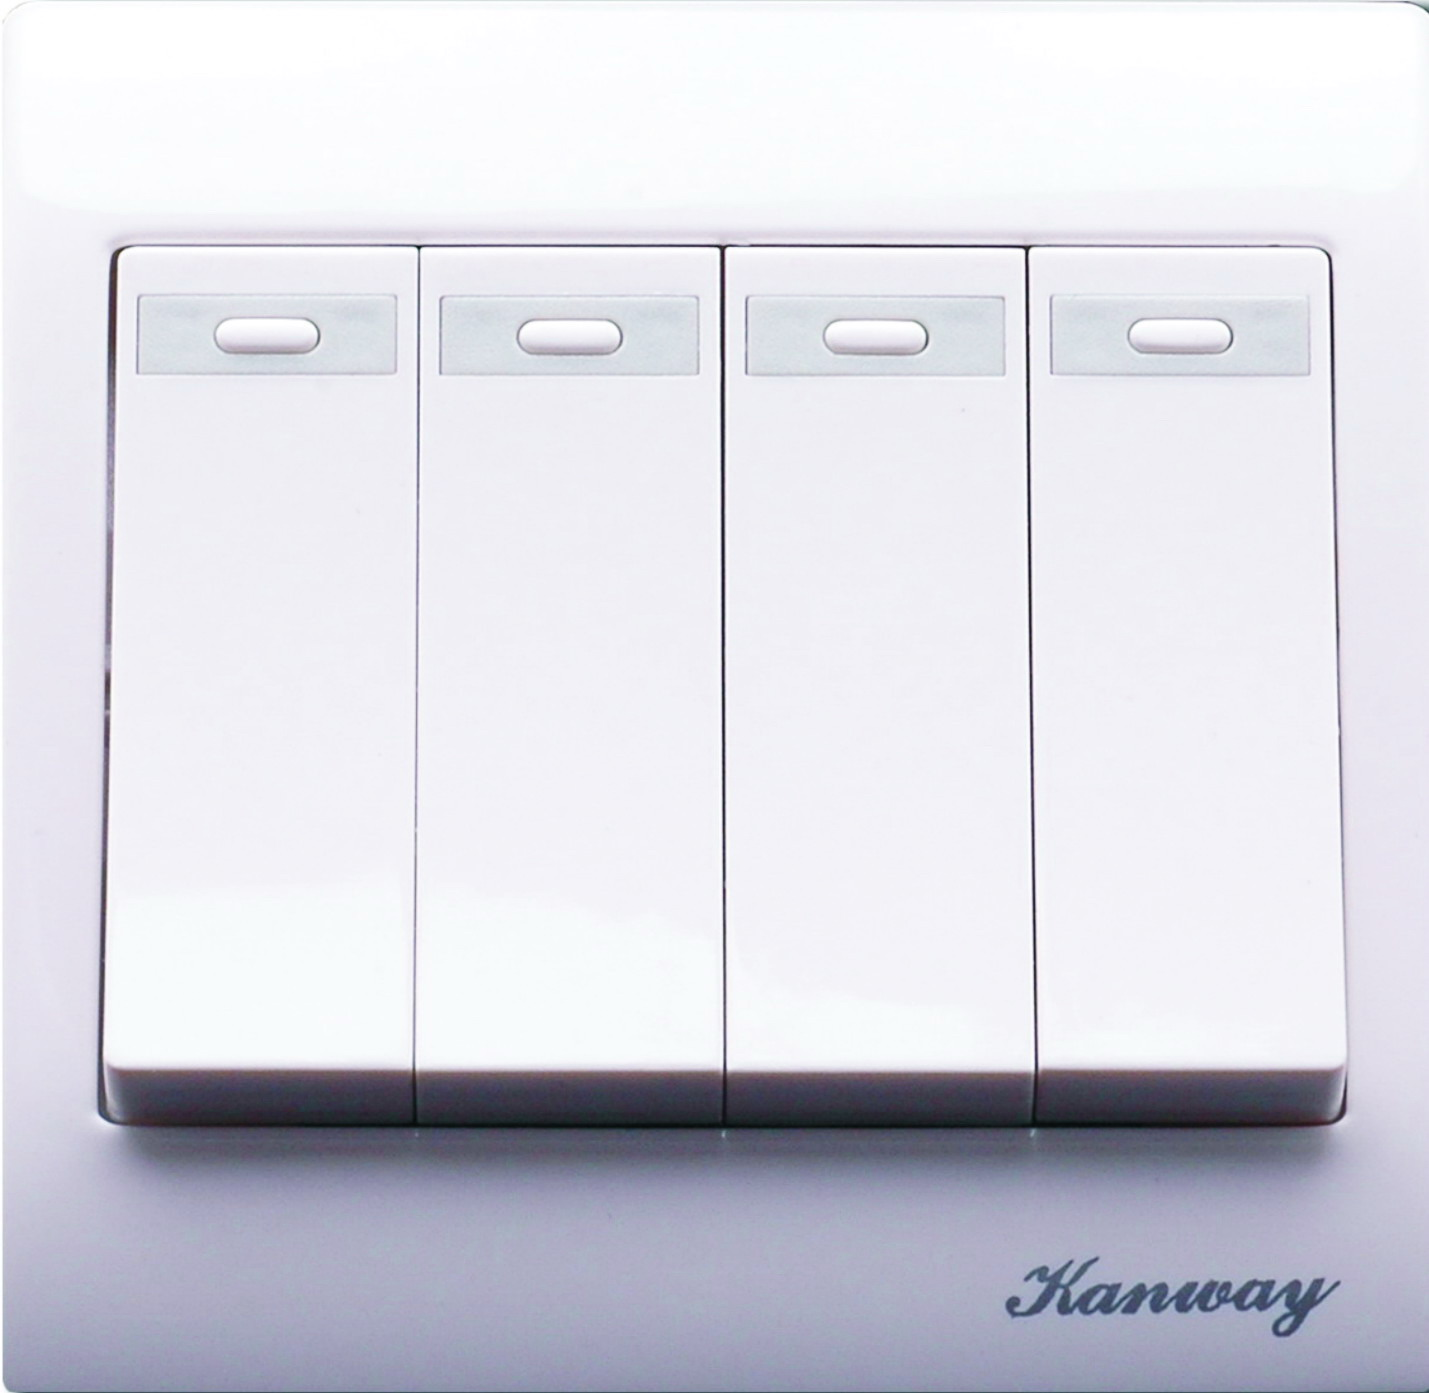 Switches And Receptacles Kanway Manufacturing Inc 2 Way Switch Colours Color White Spec 250v 10a Desc 4 Pole 1 Or With Phosphorescence